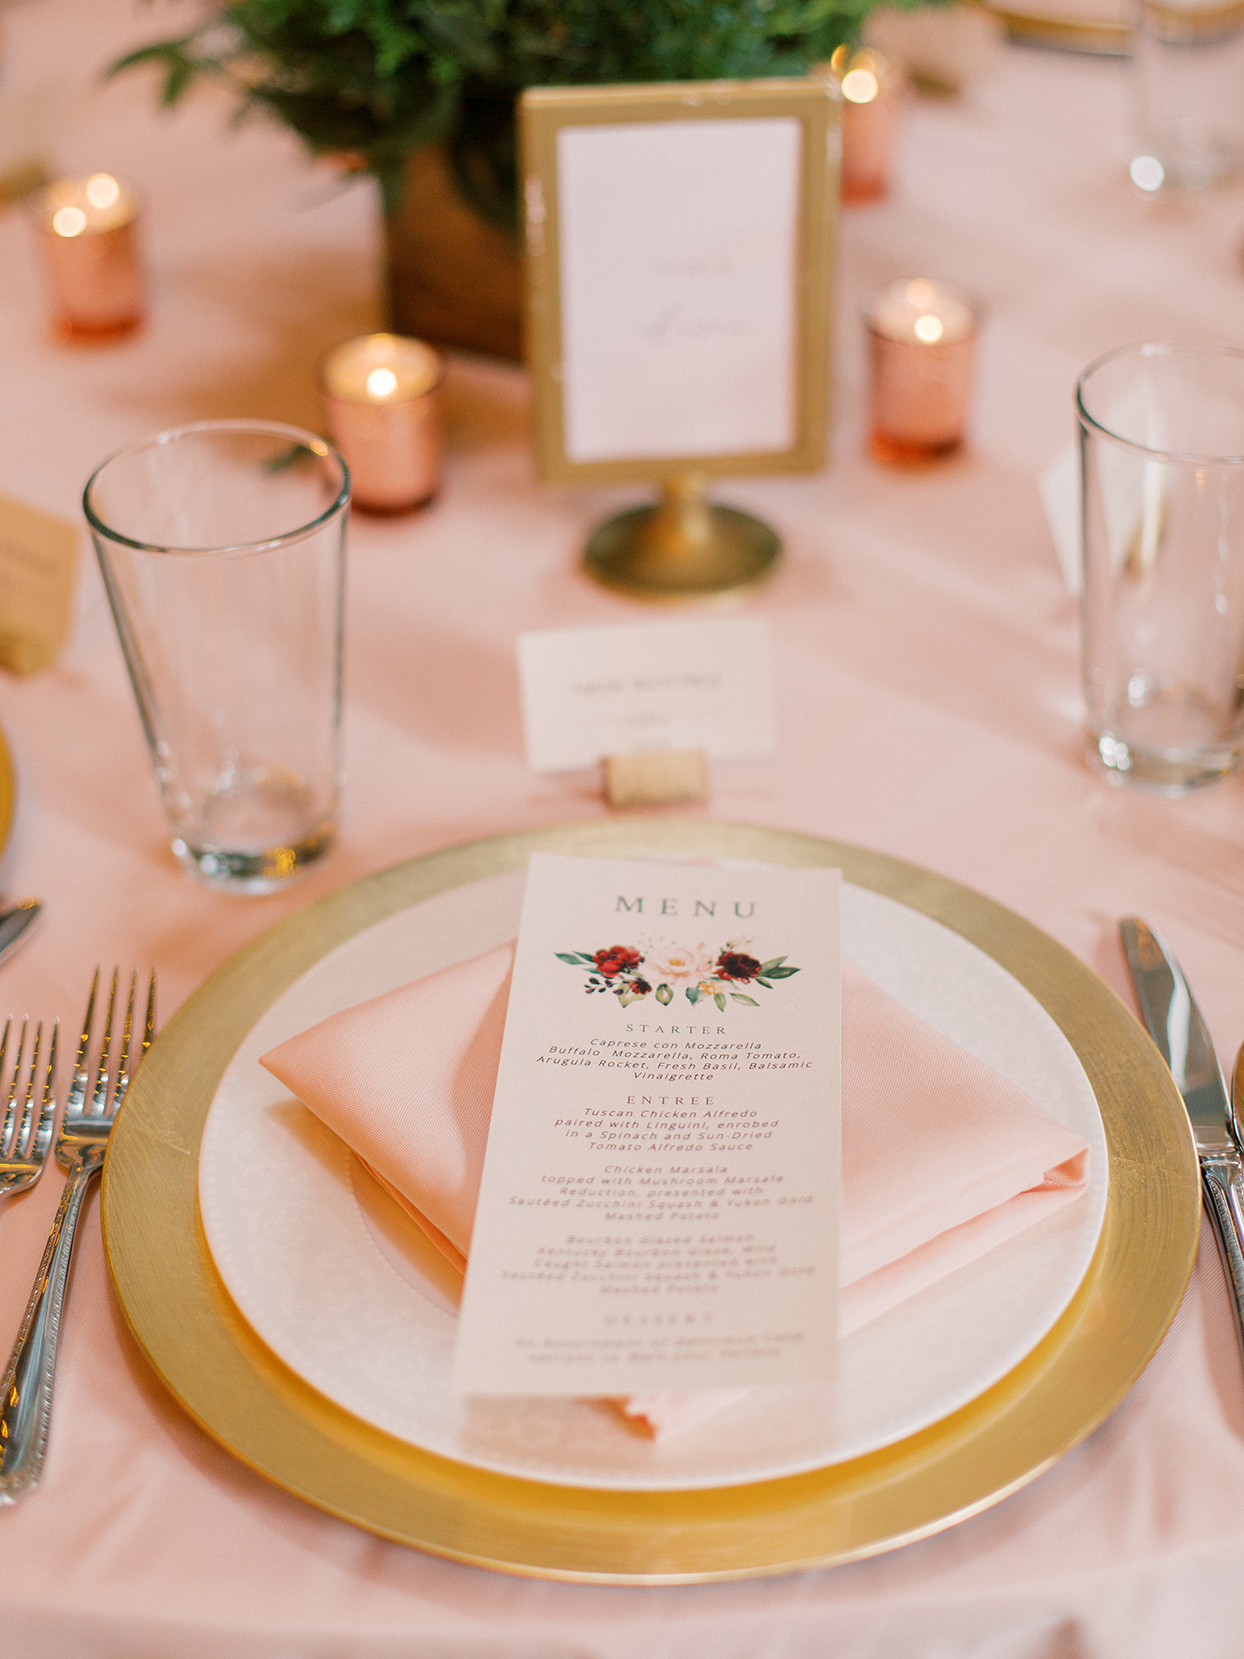 rebecca isaac wedding reception place setting with menu